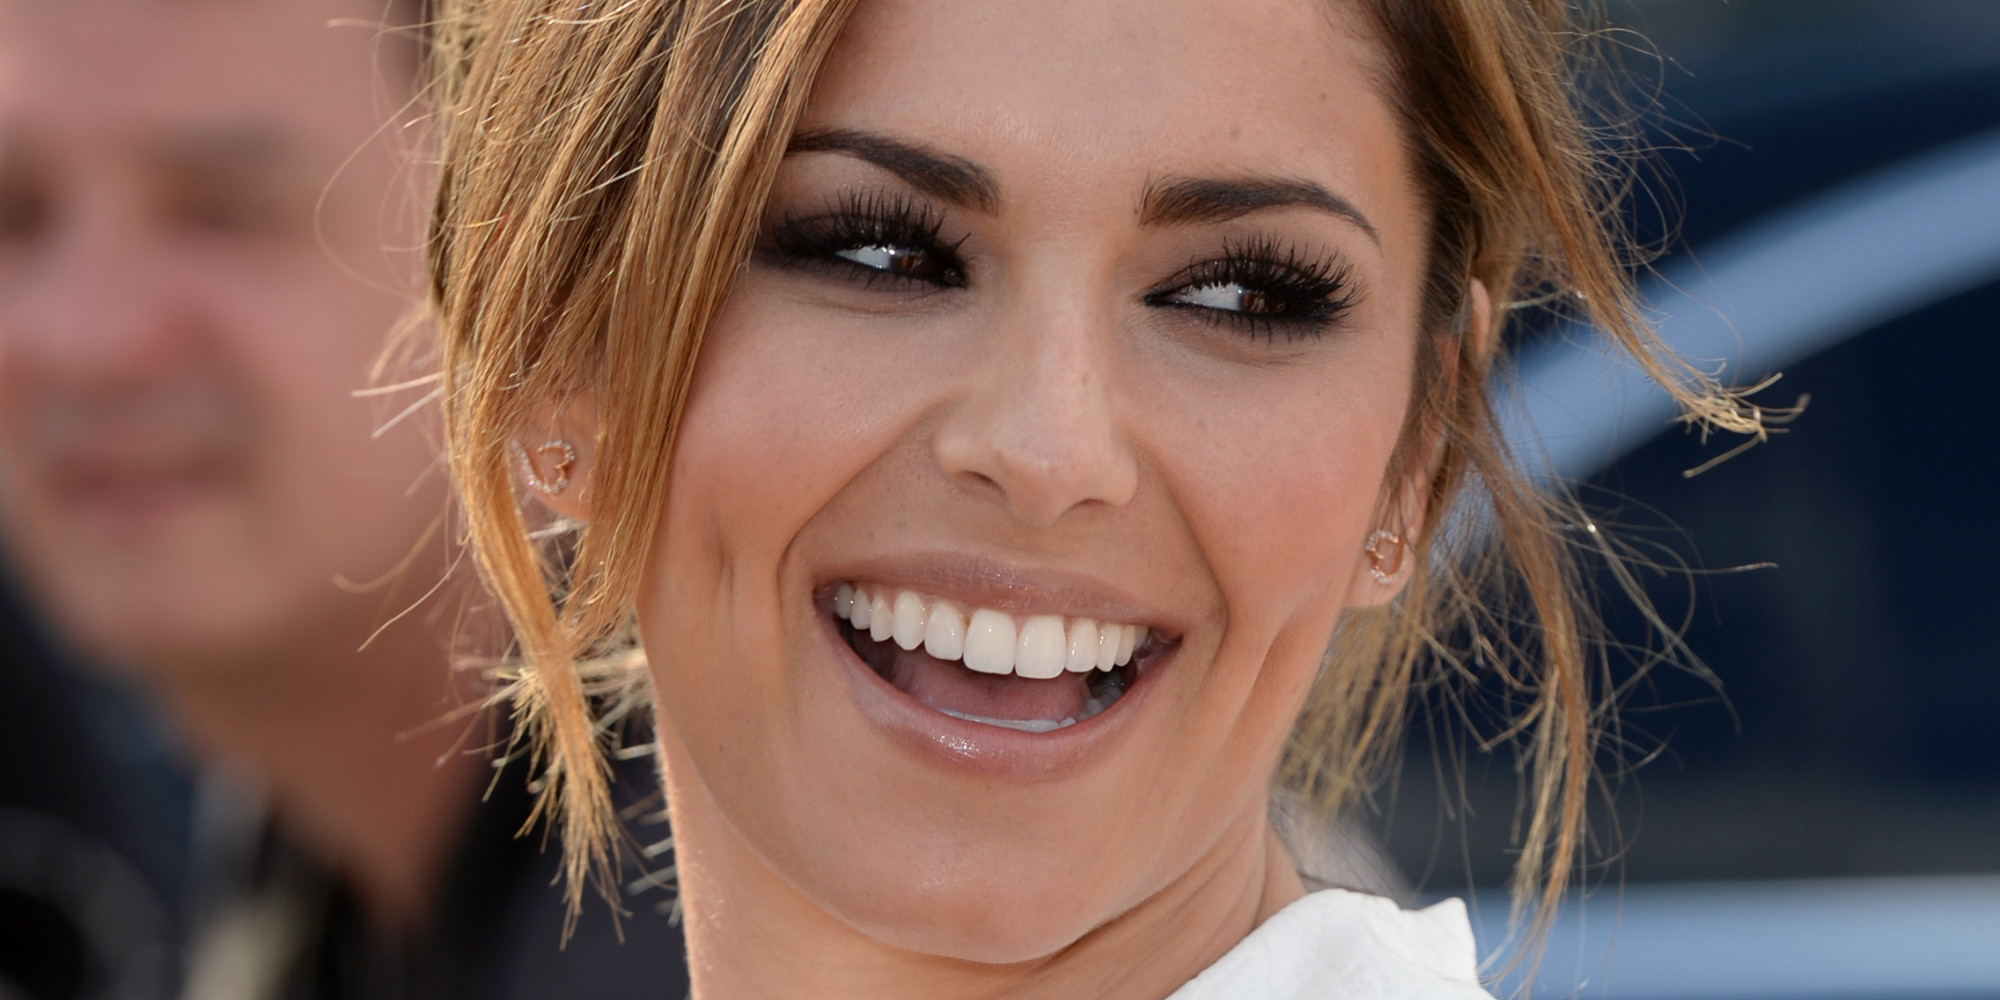 Cheryl Cole Married: Star Changes Name To Cheryl Fernandez-Versini ...